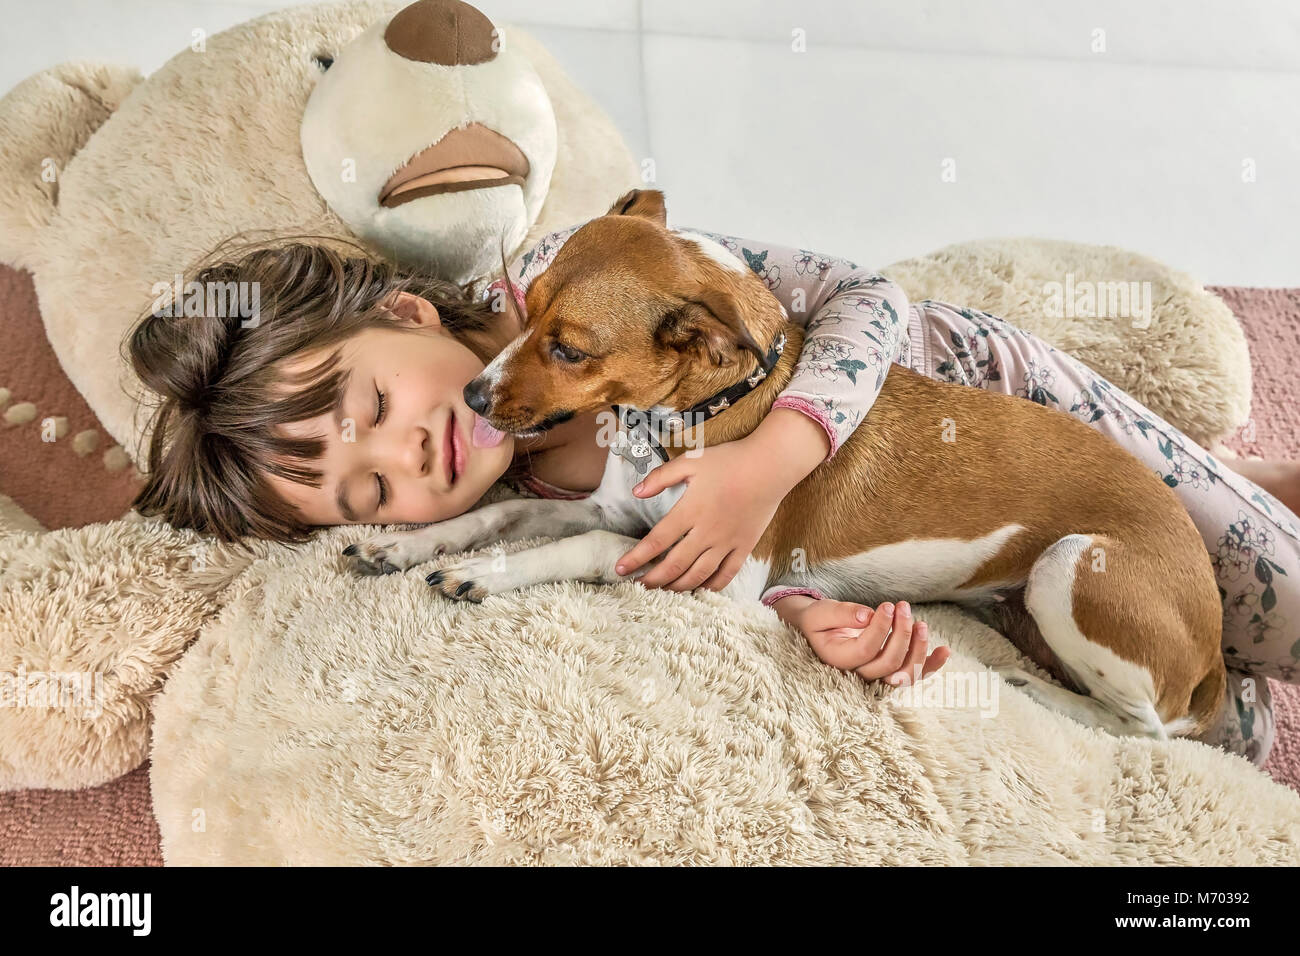 Six year old girl being kissed by her dog on a giant bear Stock Photo